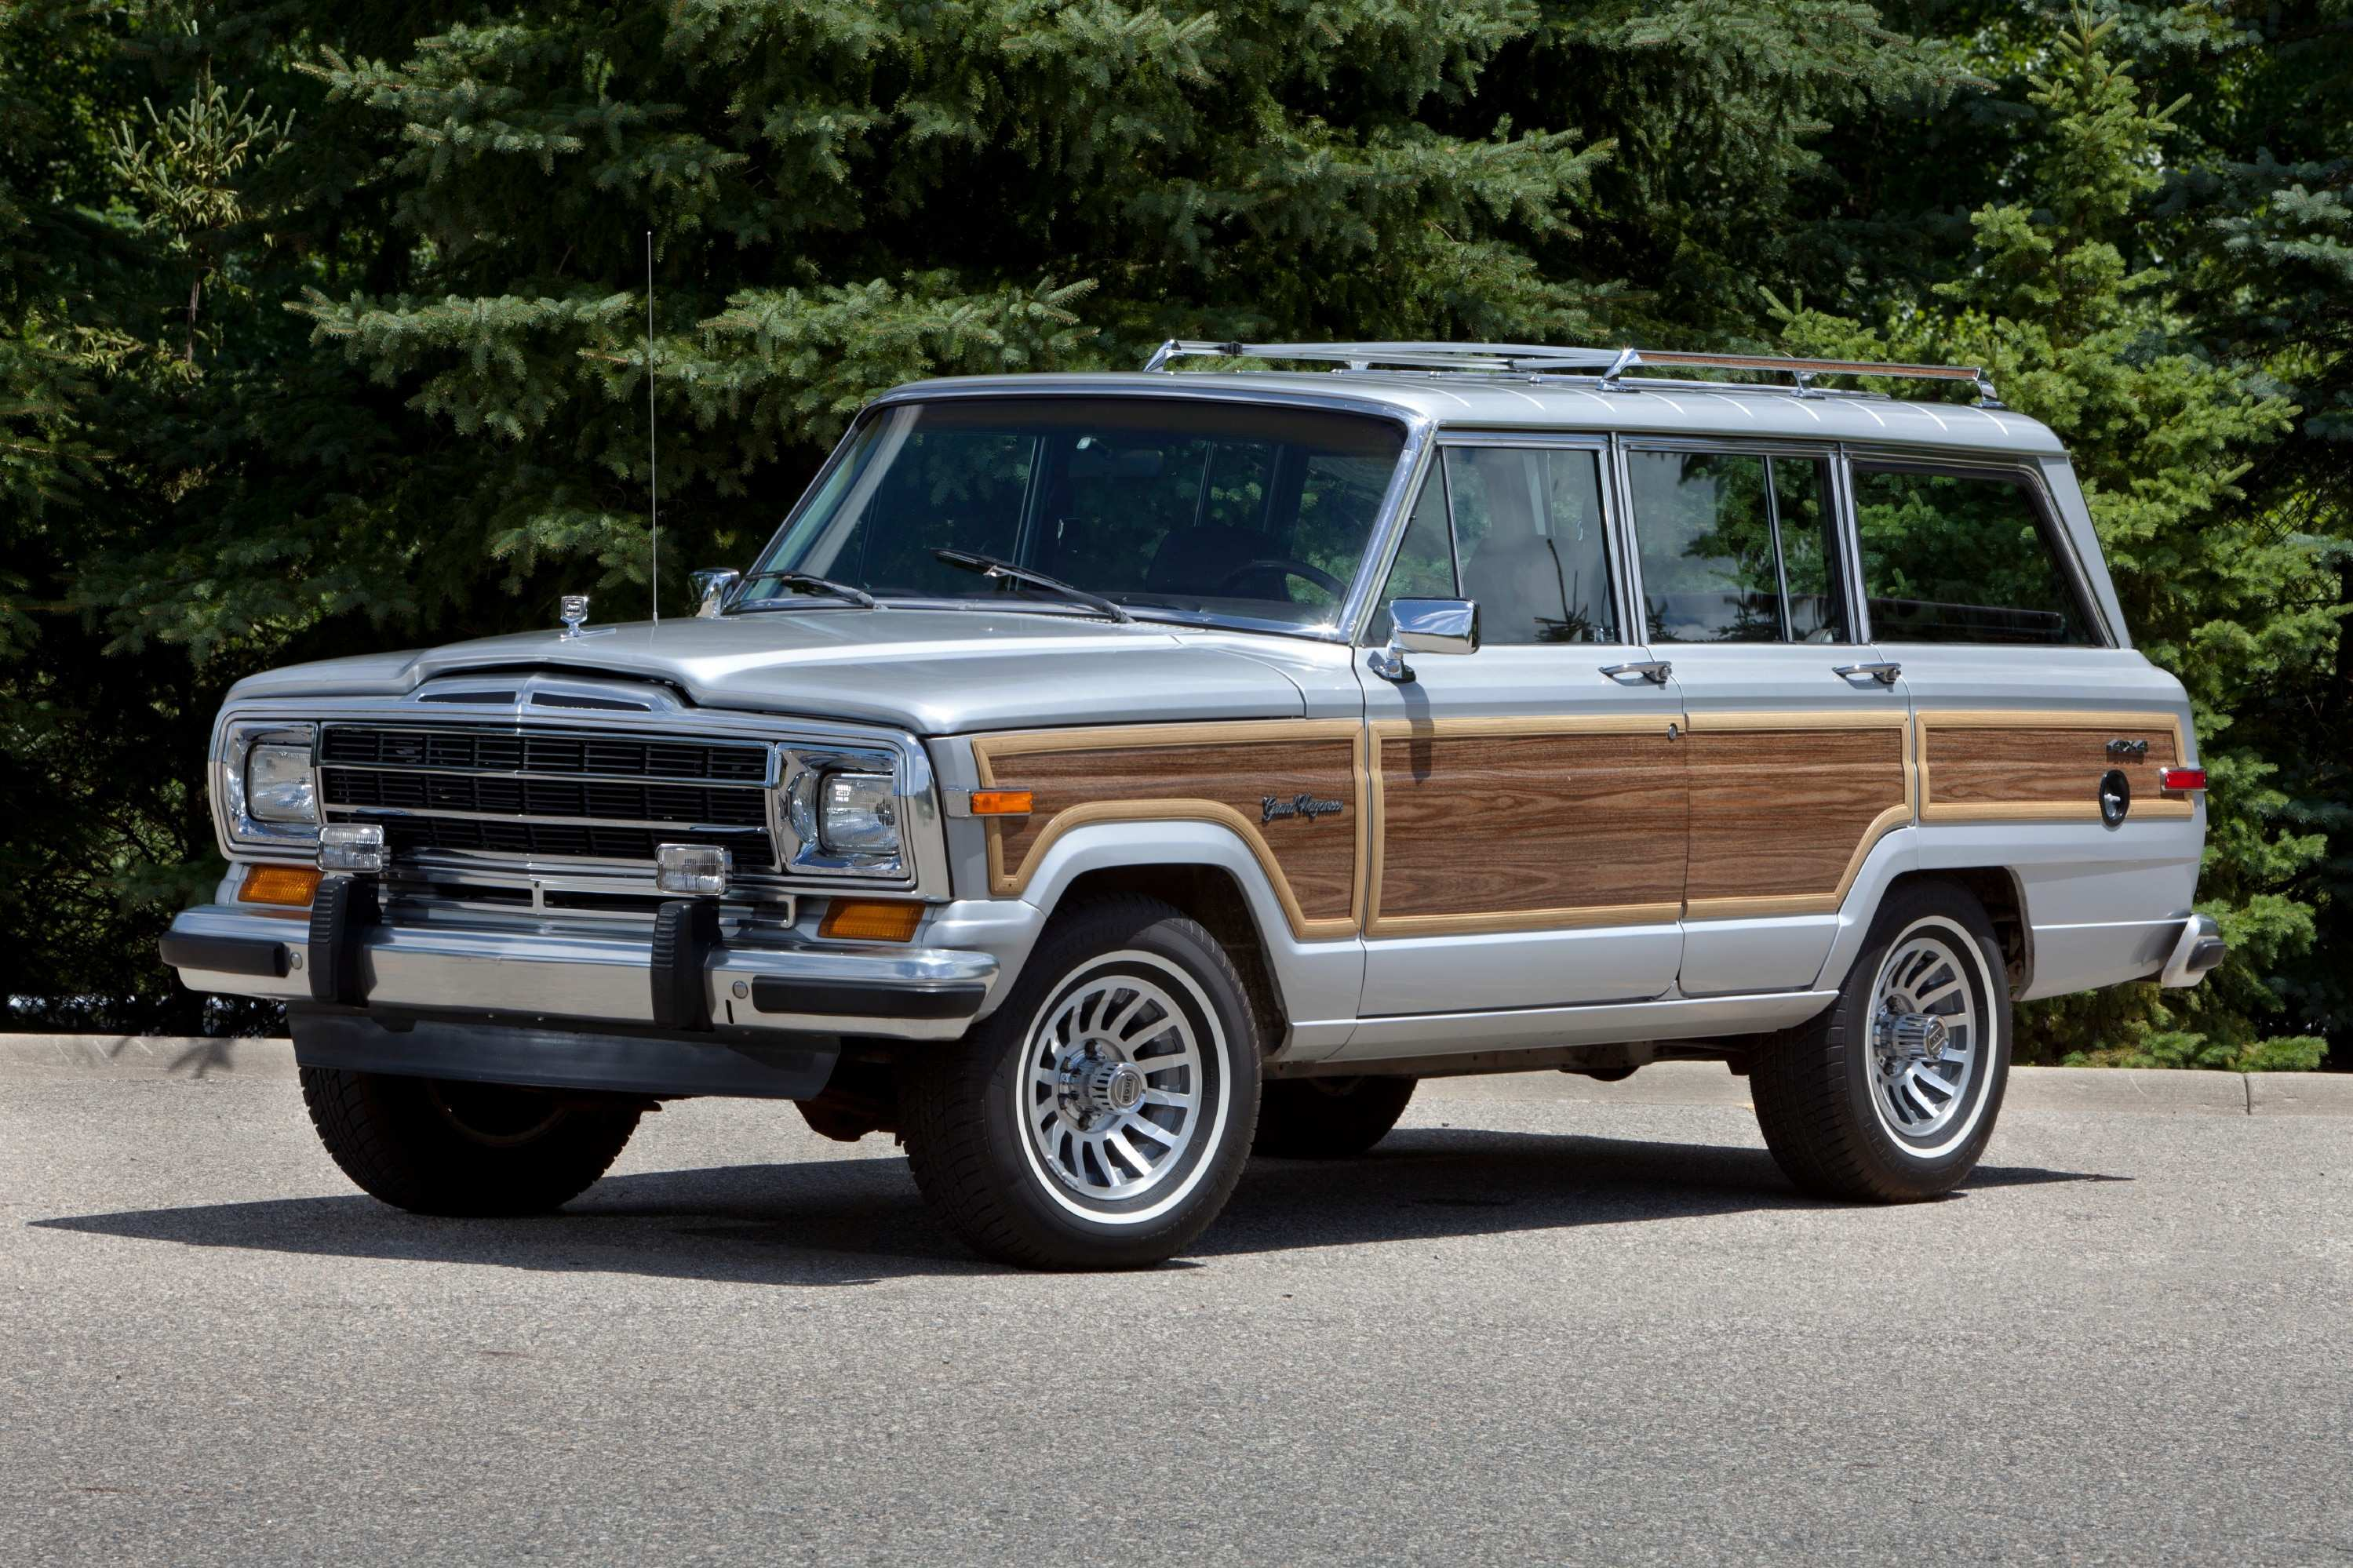 66 All New 2019 Jeep Grand Wagoneer Release Date And Concept